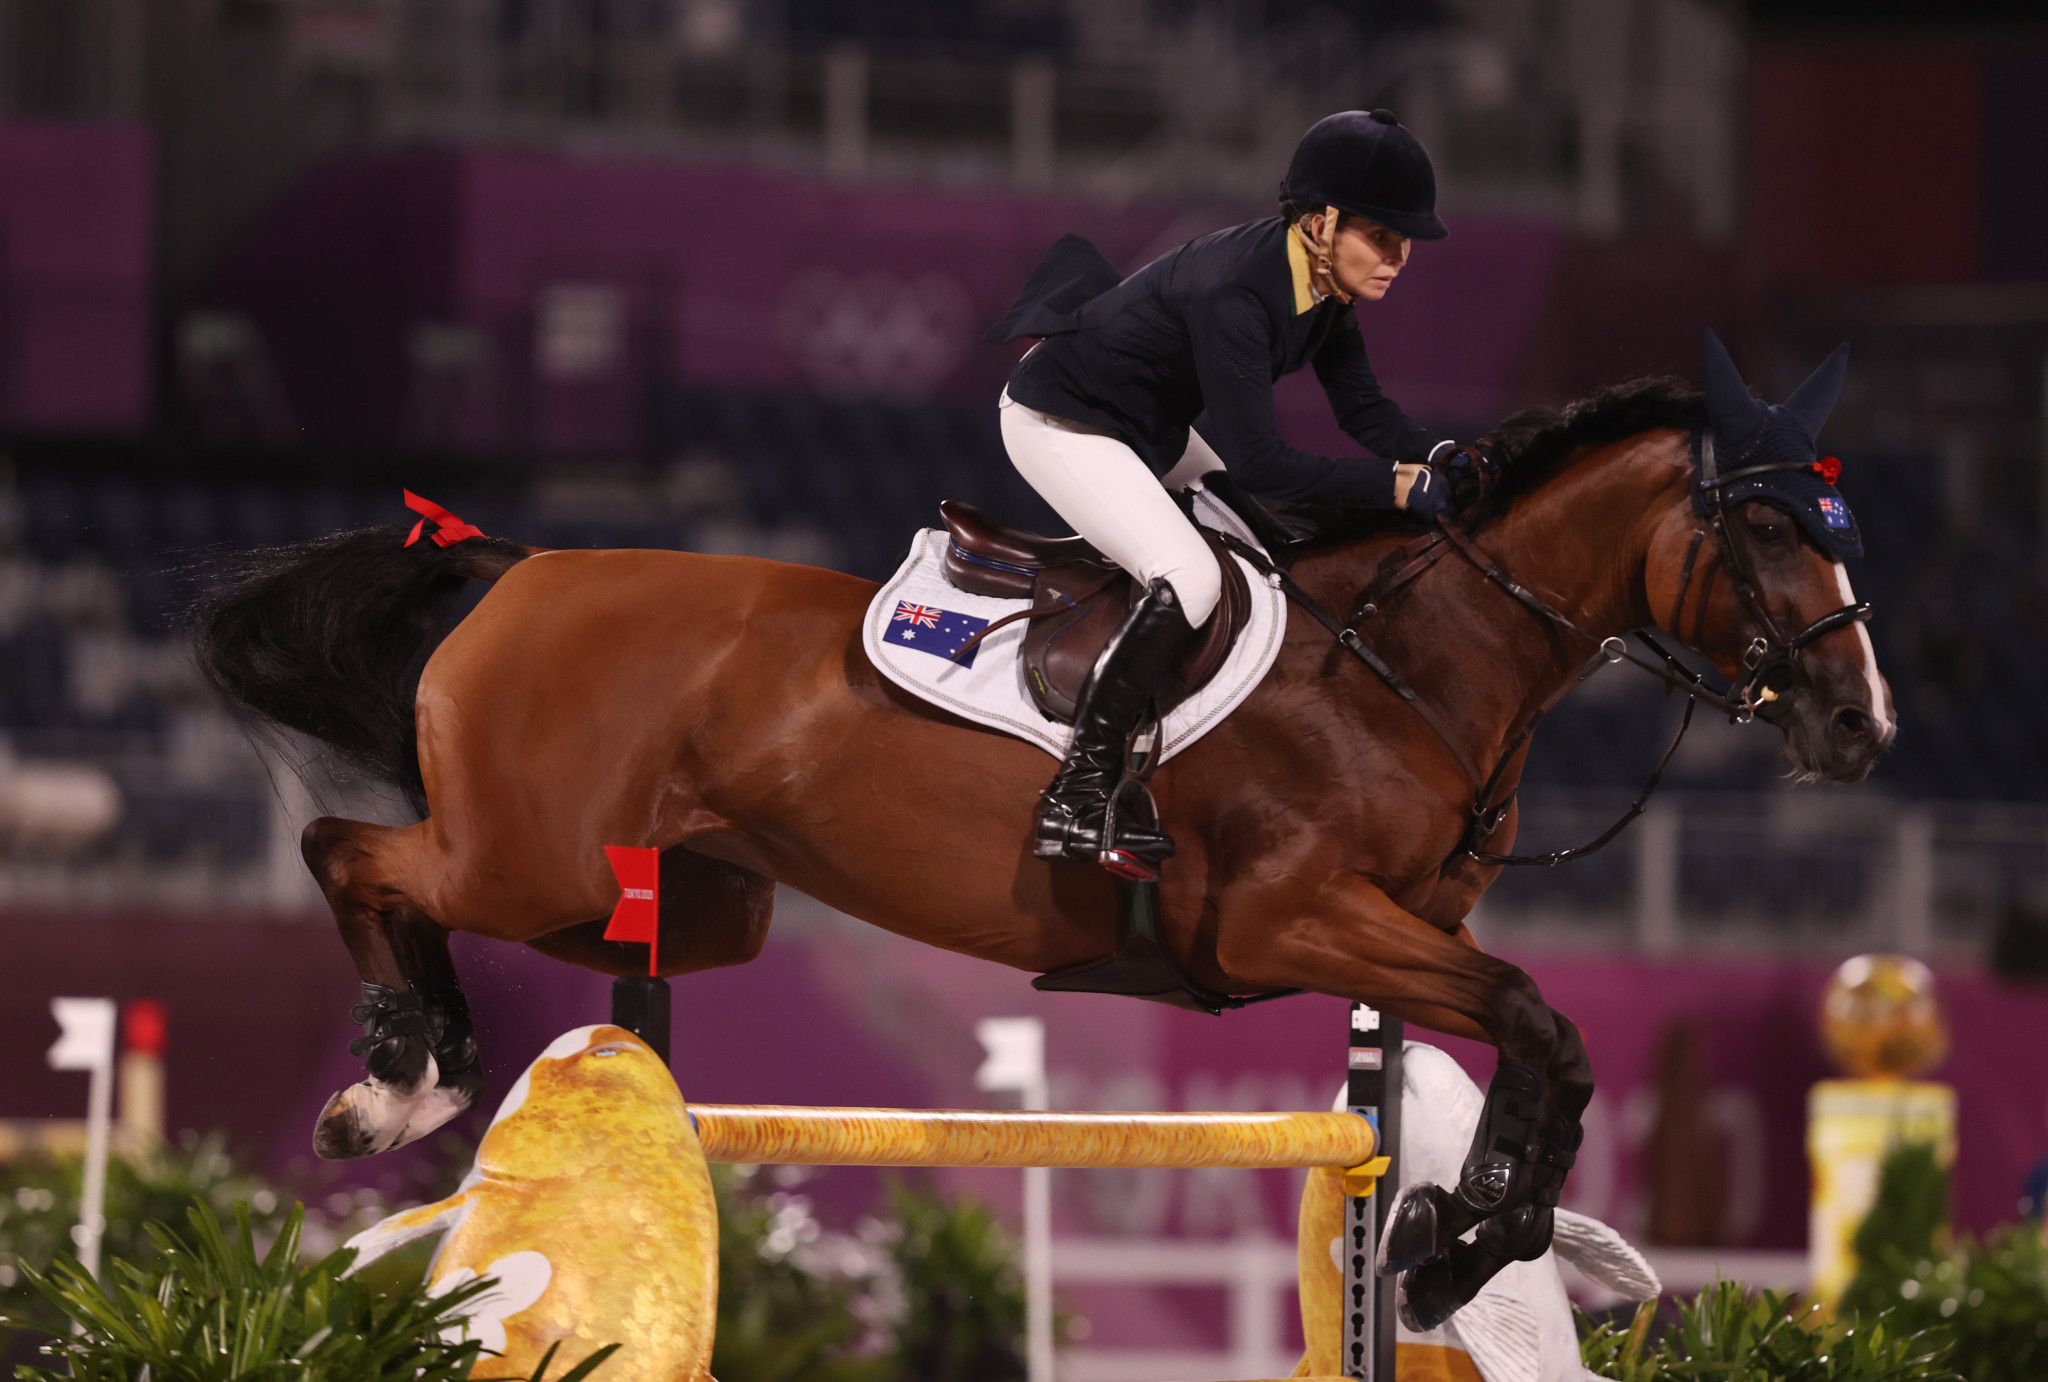 Tops-Alexander among contenders at Longines Global Champions Tour in Valkenswaard